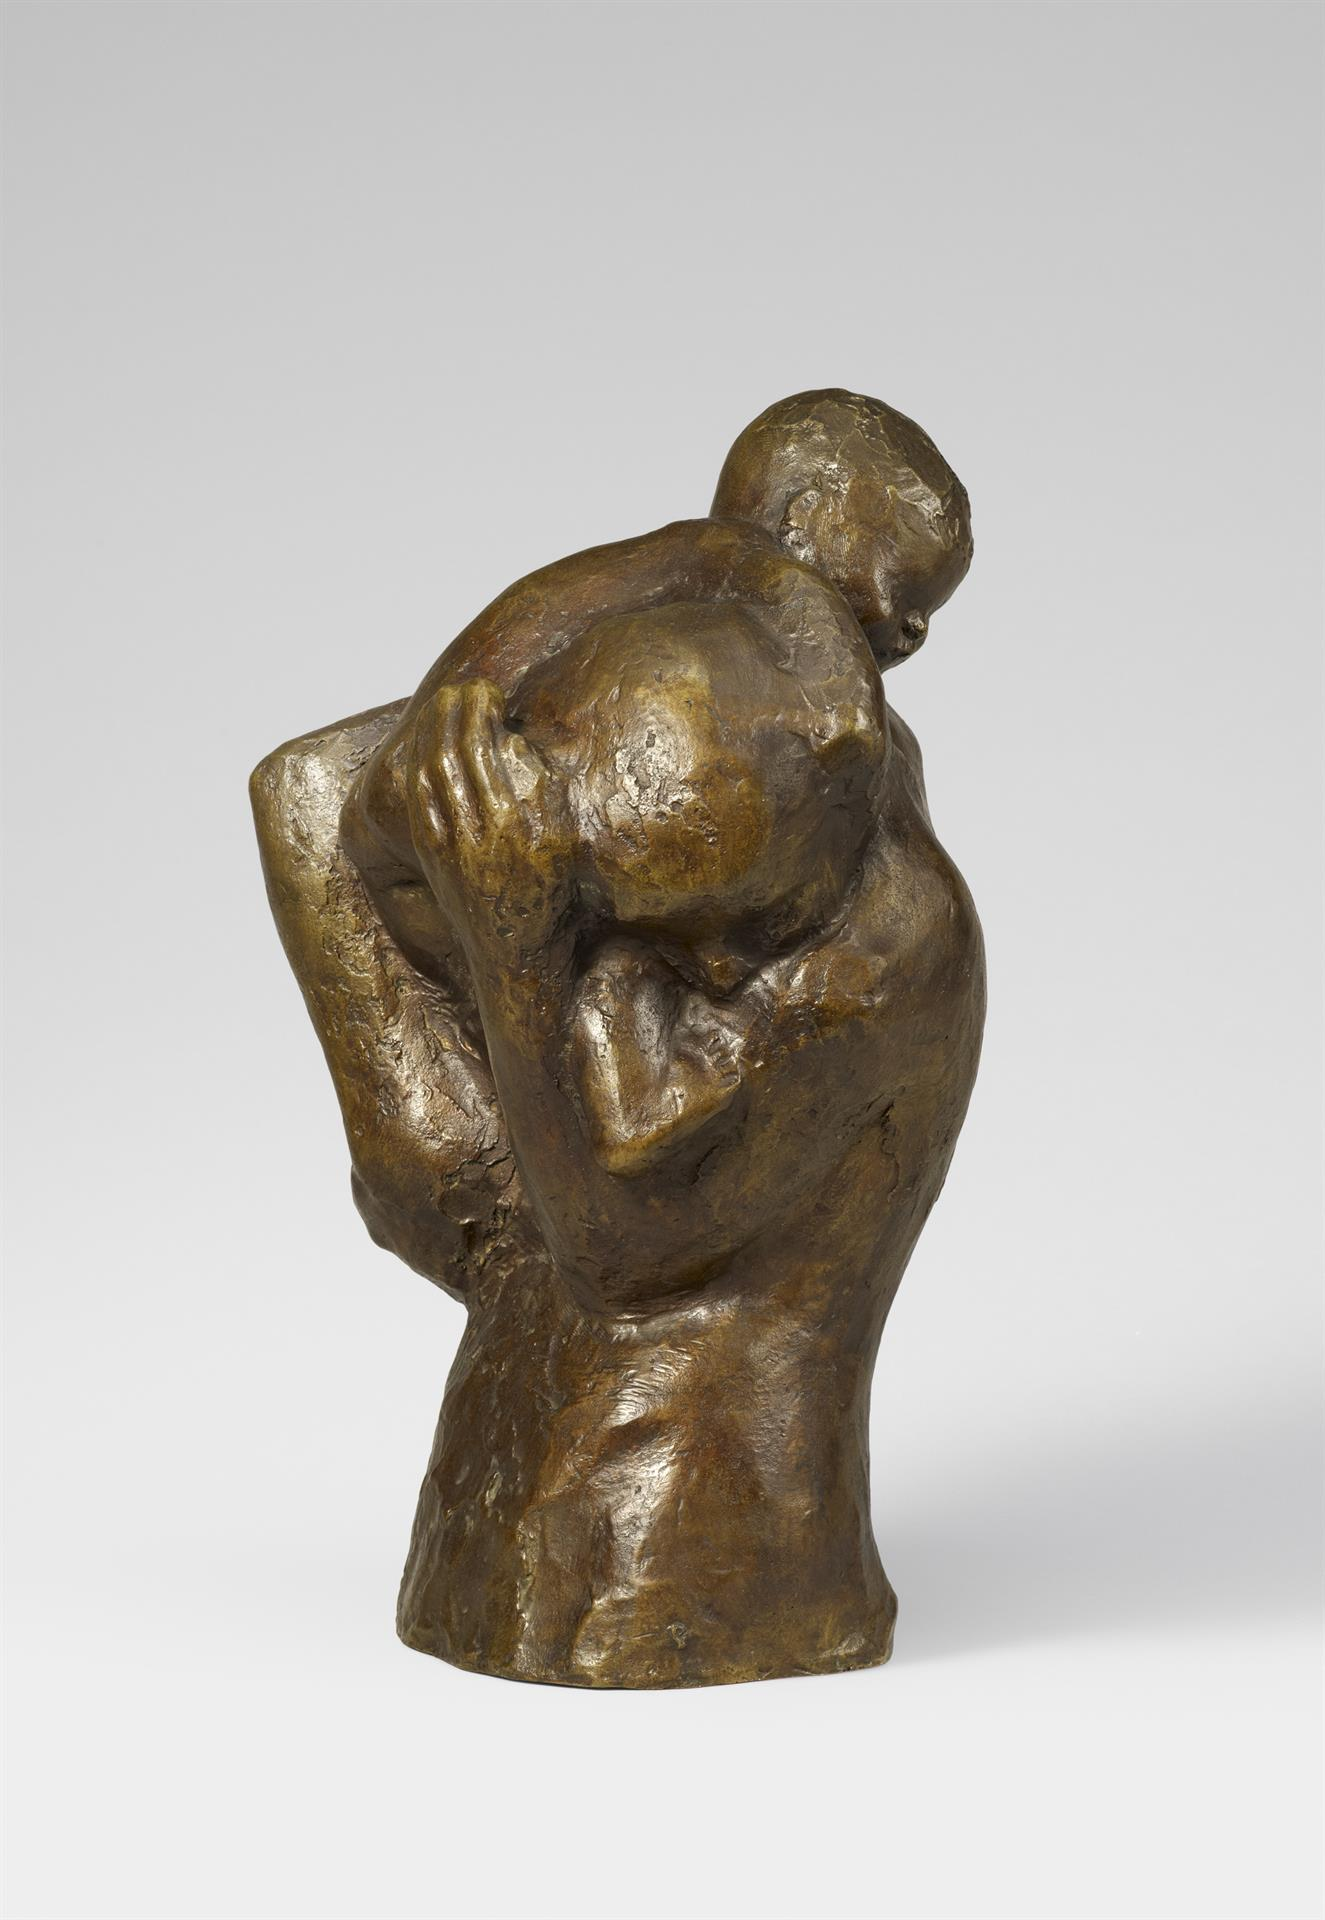 Käthe Kollwitz, Mother with Child over her Shoulder, before 1917, bronze, Seeler 15 I.B.3., Cologne Kollwitz Collection © Käthe Kollwitz Museum Köln